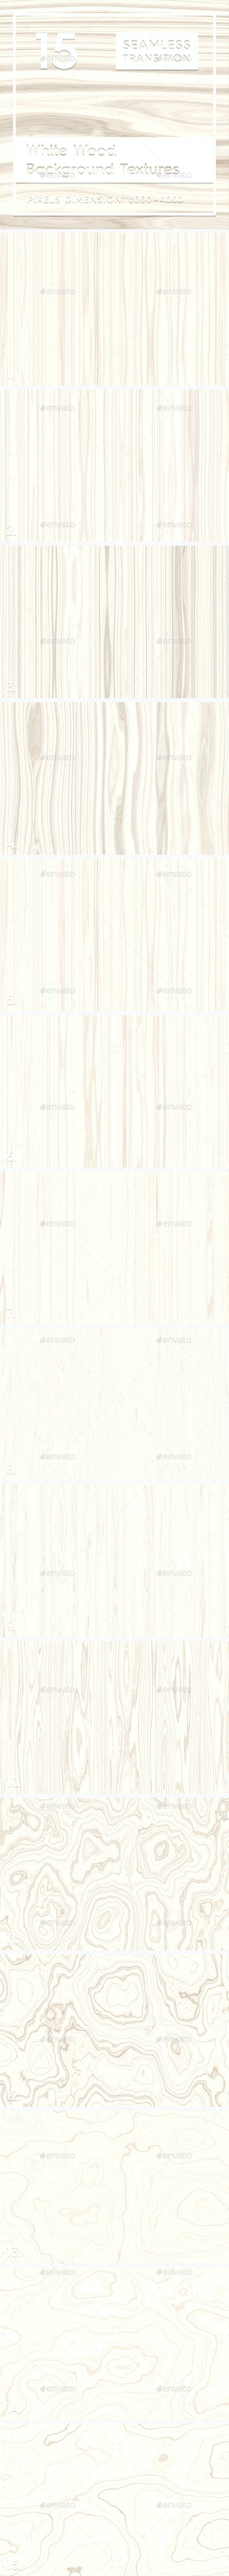 15 White Wood Background Textures - 3DOcean Item for Sale